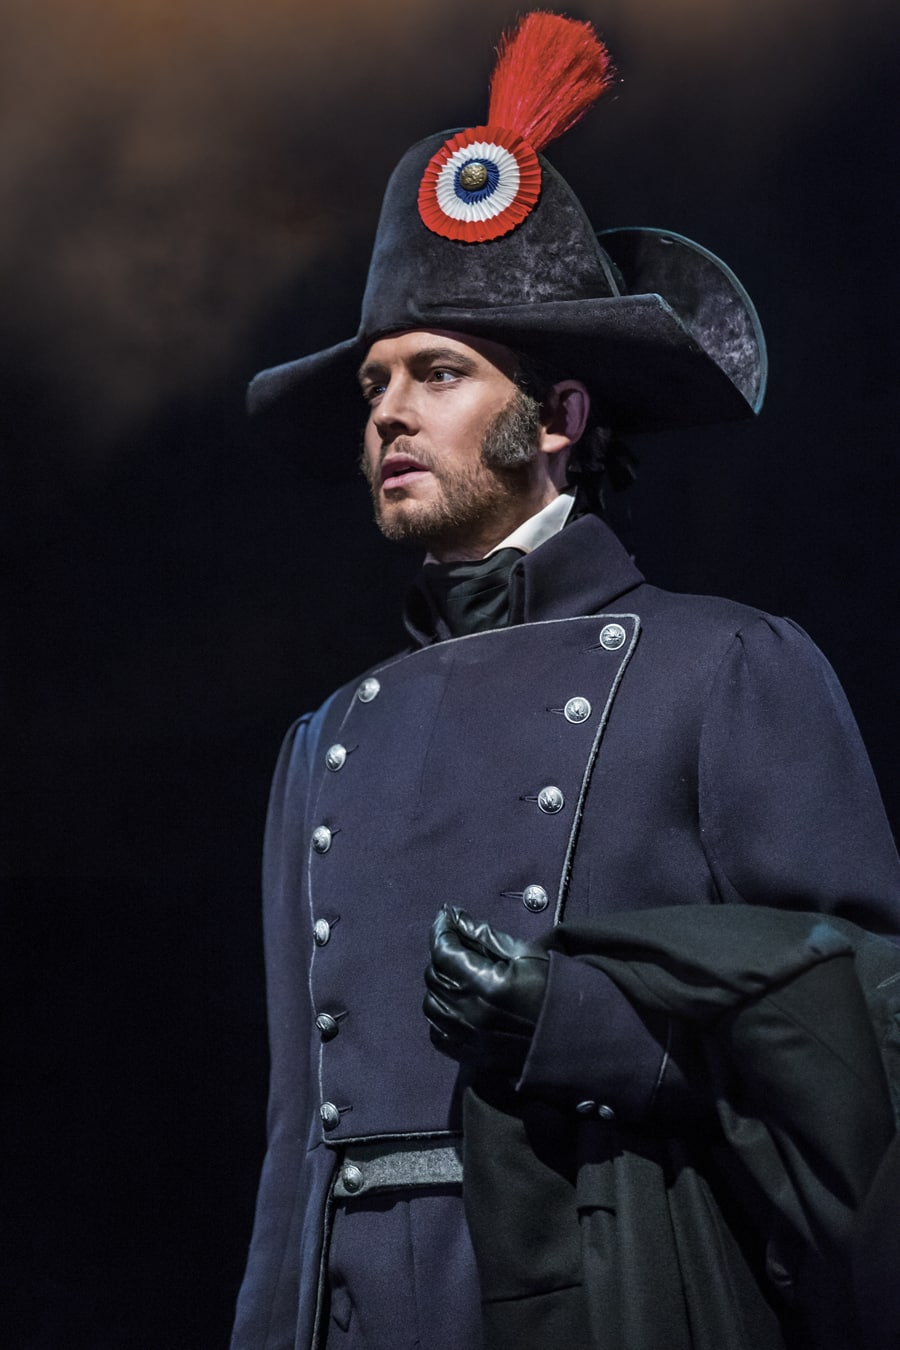 David Thaxton returns to the role of Javert in January 2018